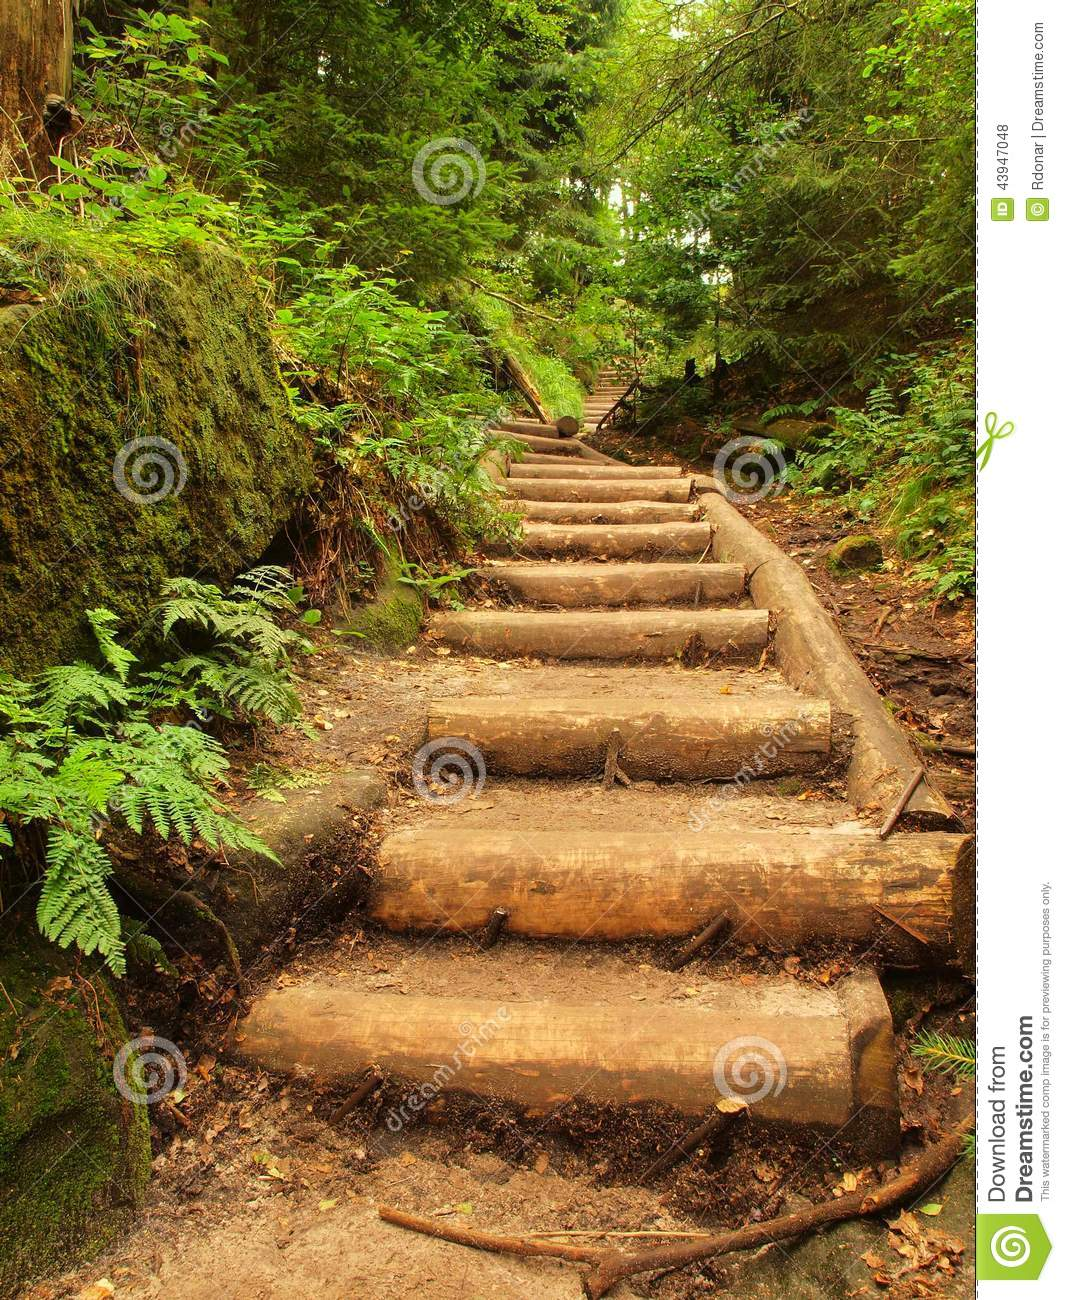 Backyard Forest Management : Old wooden stairs in overgrown forest garden, tourist footpath Steps